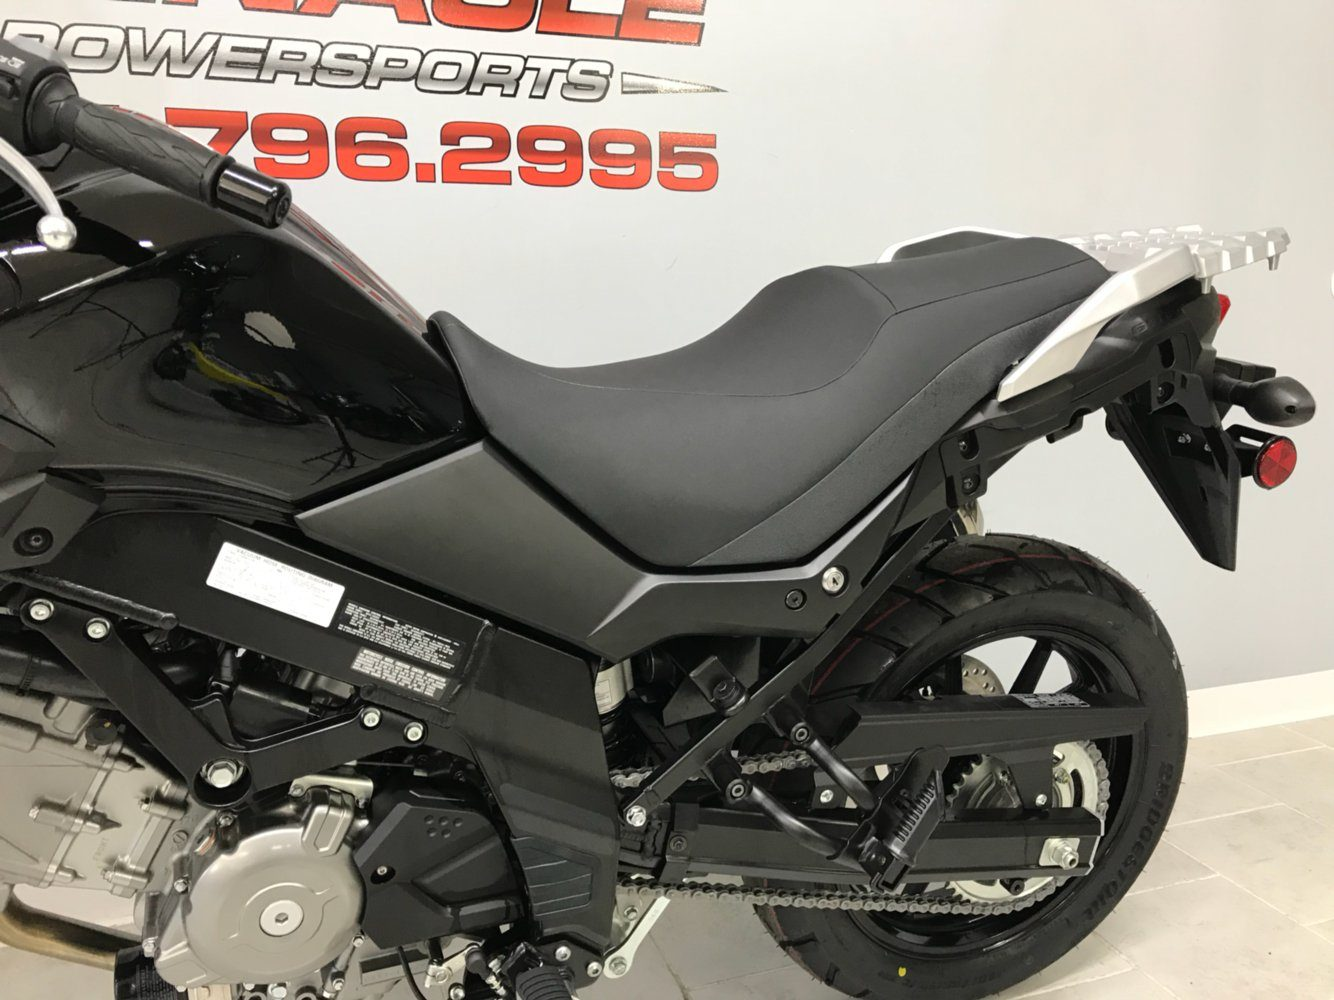 2018 Suzuki V-Strom 650 in Belleville, Michigan - Photo 14